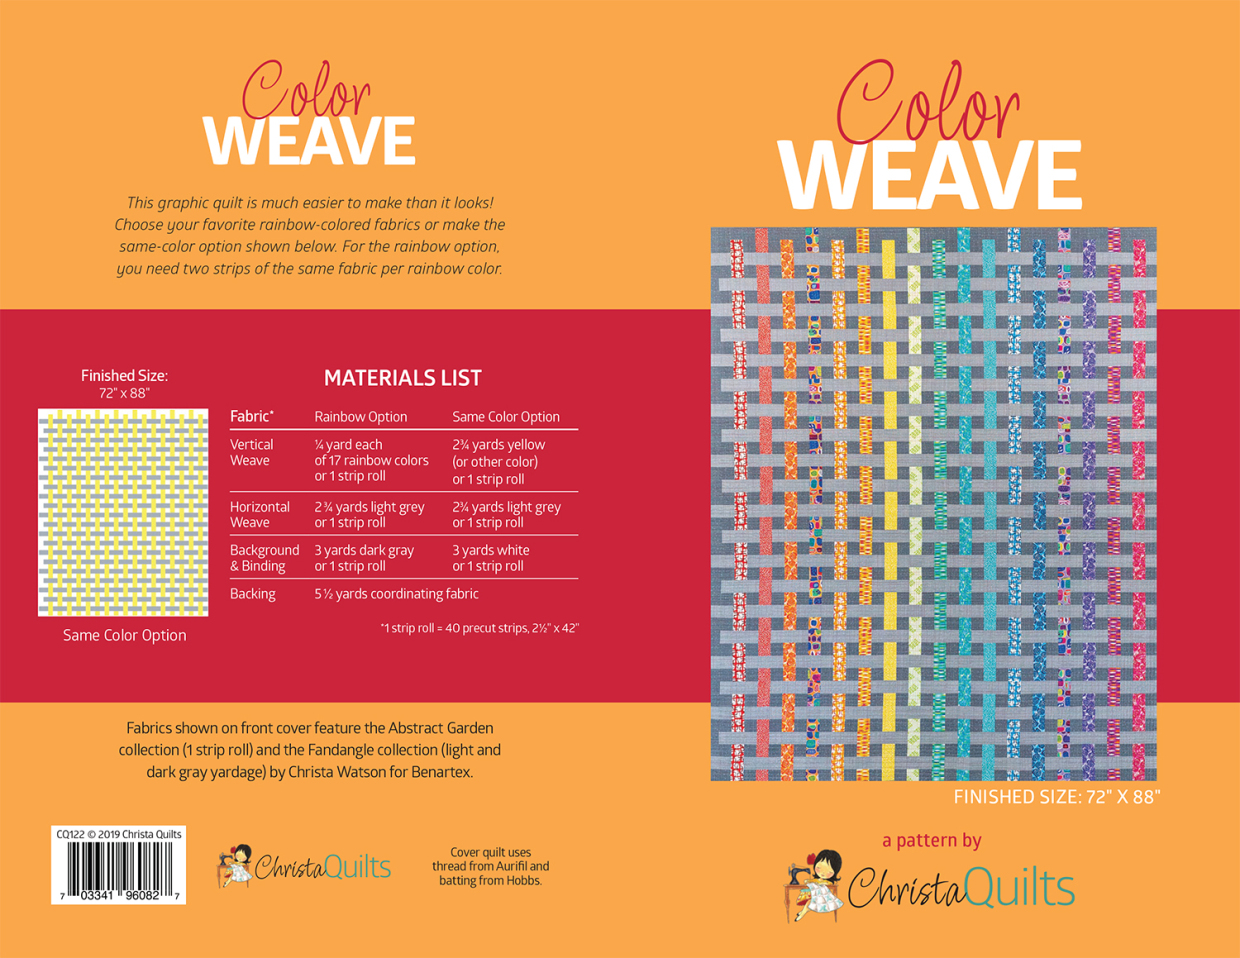 color-weave-cover-spread-1.jpg